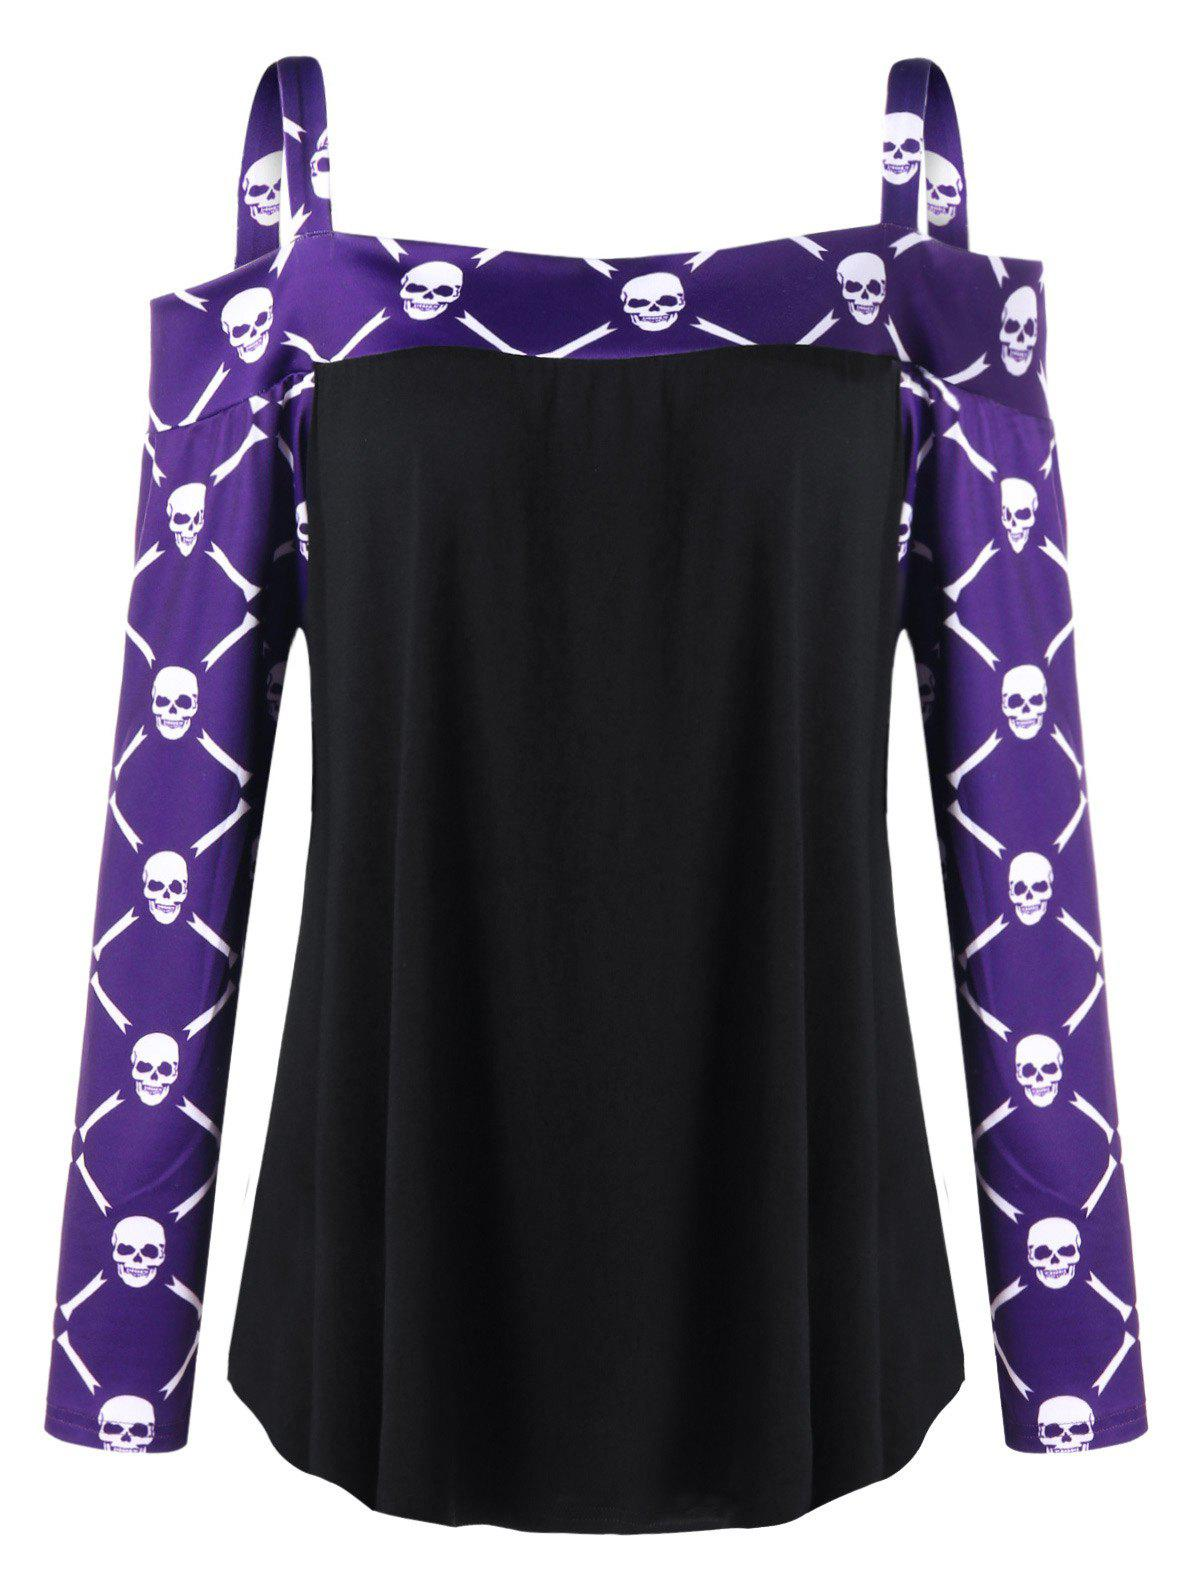 Plus Size Skulls Long Sleeve Cold Shoulder T-shirtWOMEN<br><br>Size: 4XL; Color: COLORMIX; Material: Cotton,Spandex; Shirt Length: Regular; Sleeve Length: Full; Collar: Spaghetti Strap; Style: Fashion; Season: Fall,Spring; Sleeve Type: Cold Shoulder; Pattern Type: Skulls; Weight: 0.3000kg; Package Contents: 1 x T-shirt;